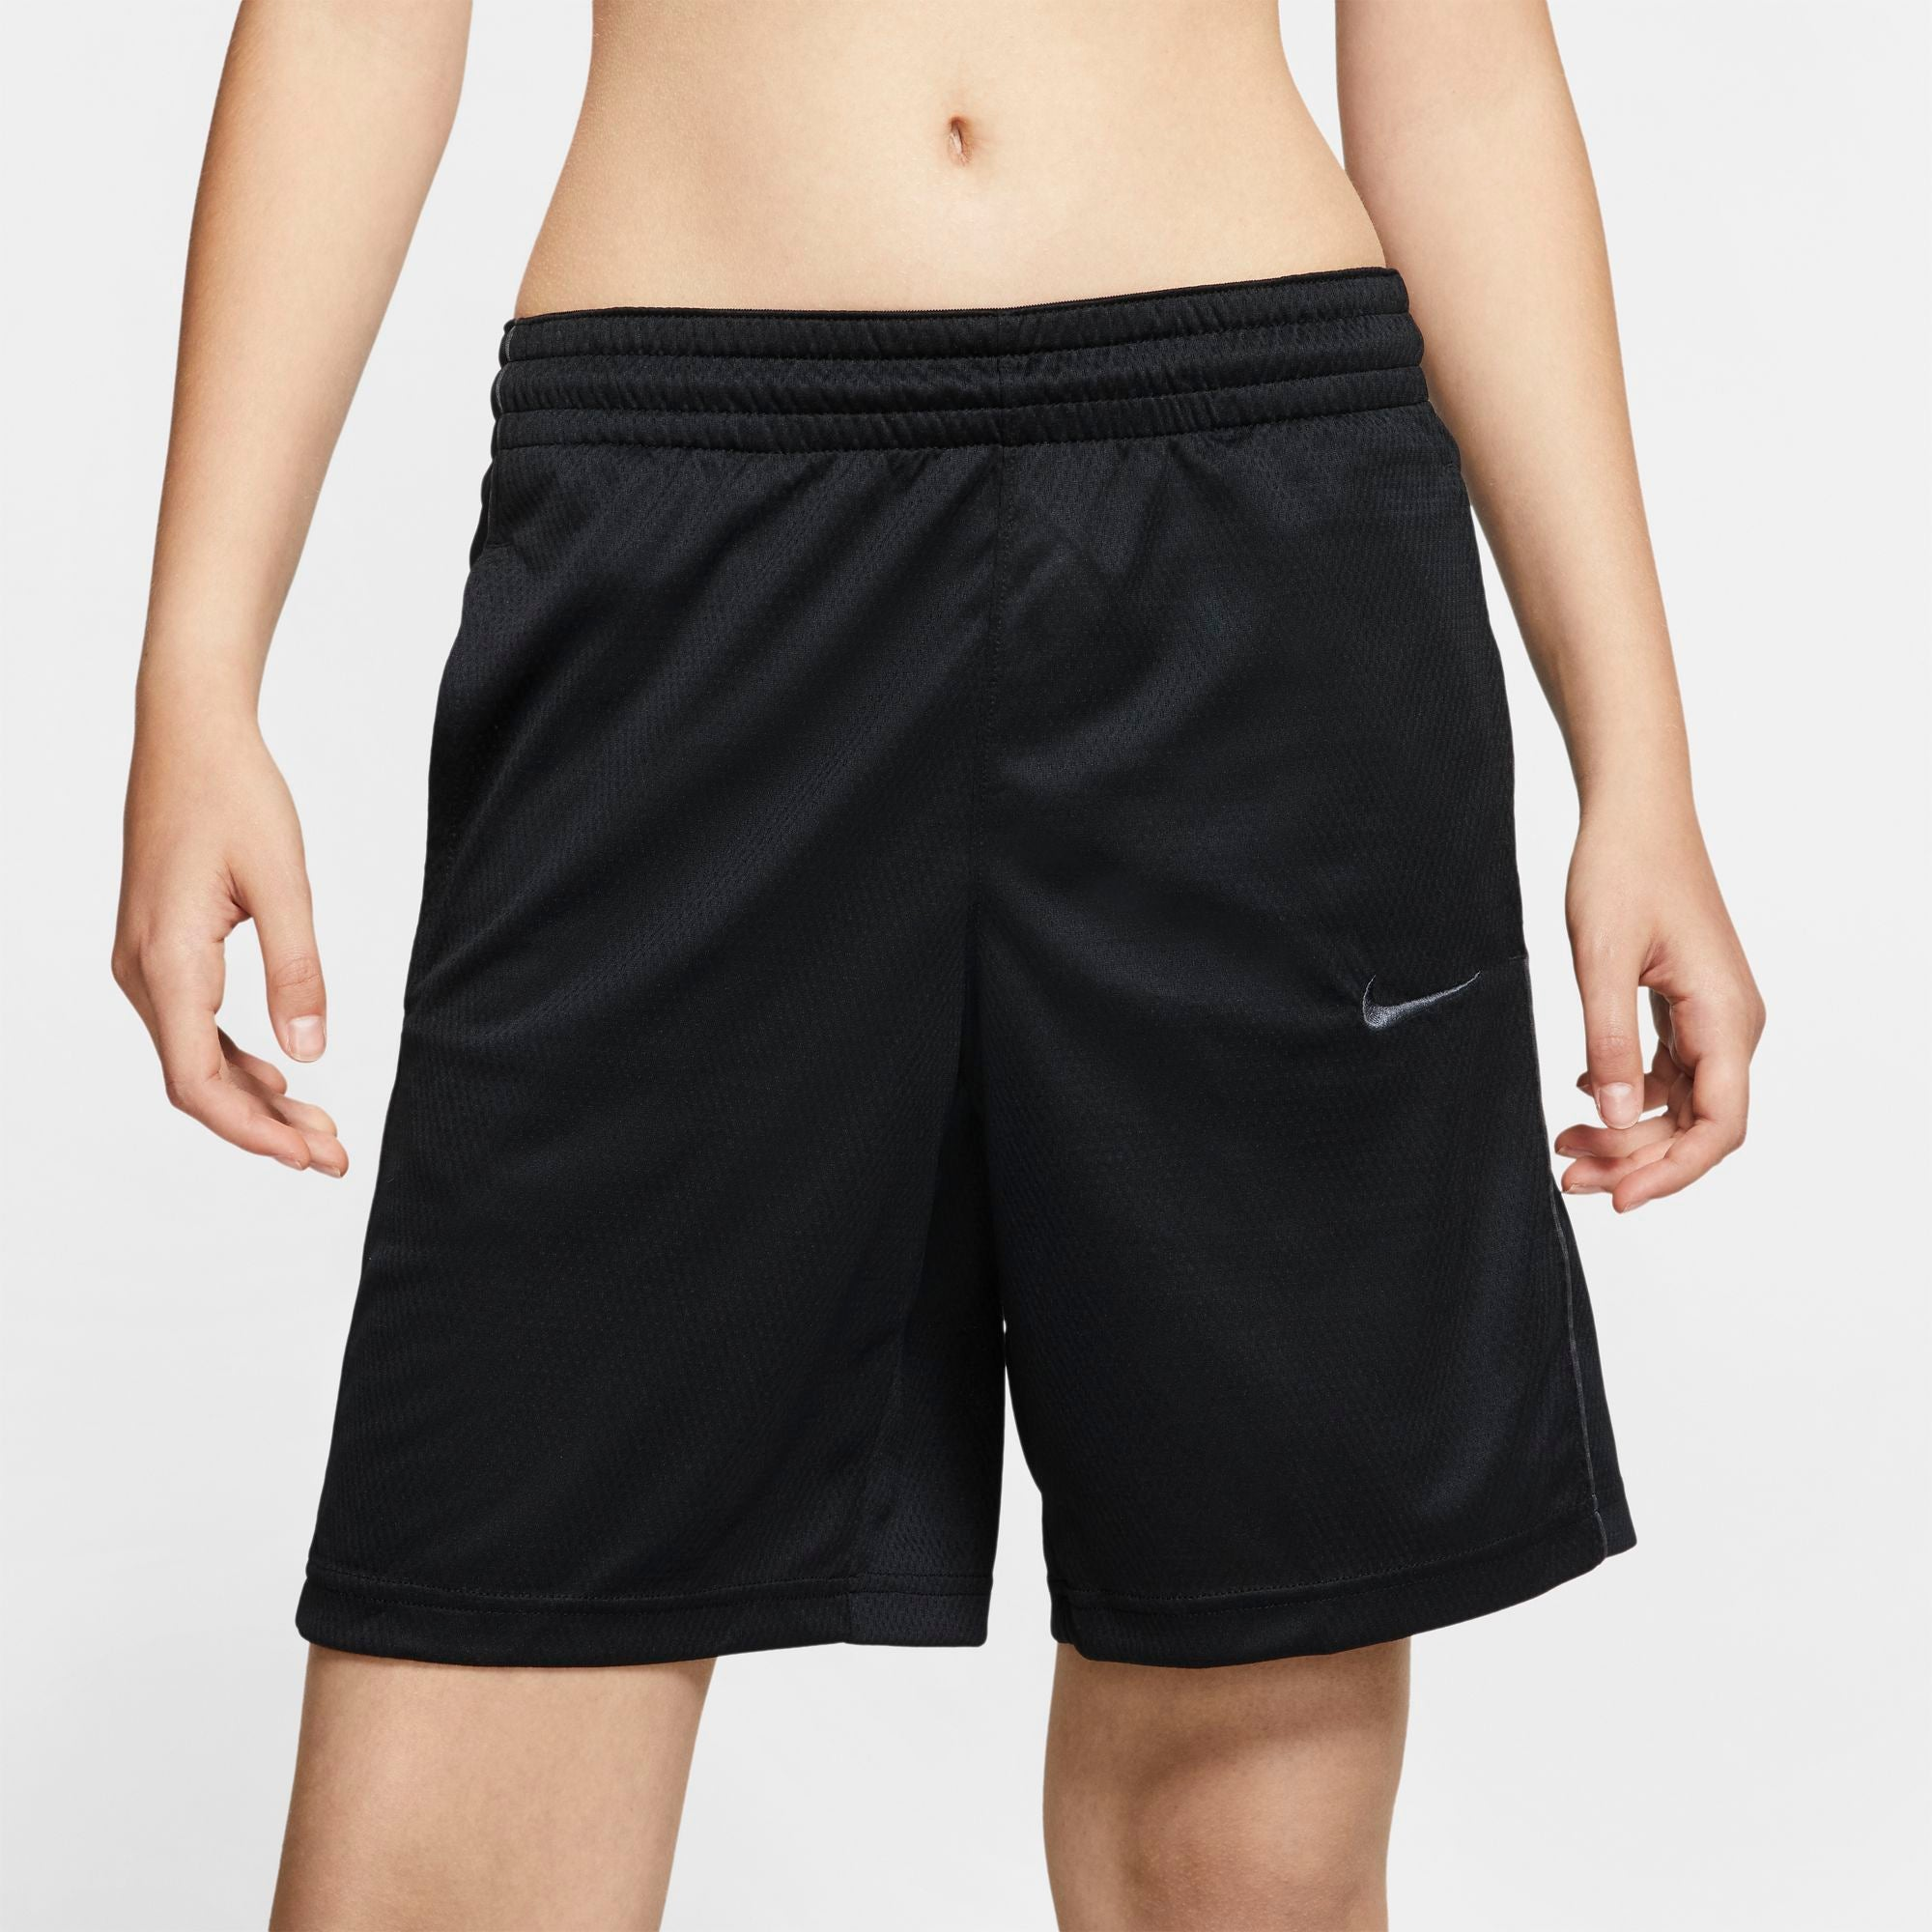 Nike Womens Basketball Dri-fit Shorts - Black/Anthracite